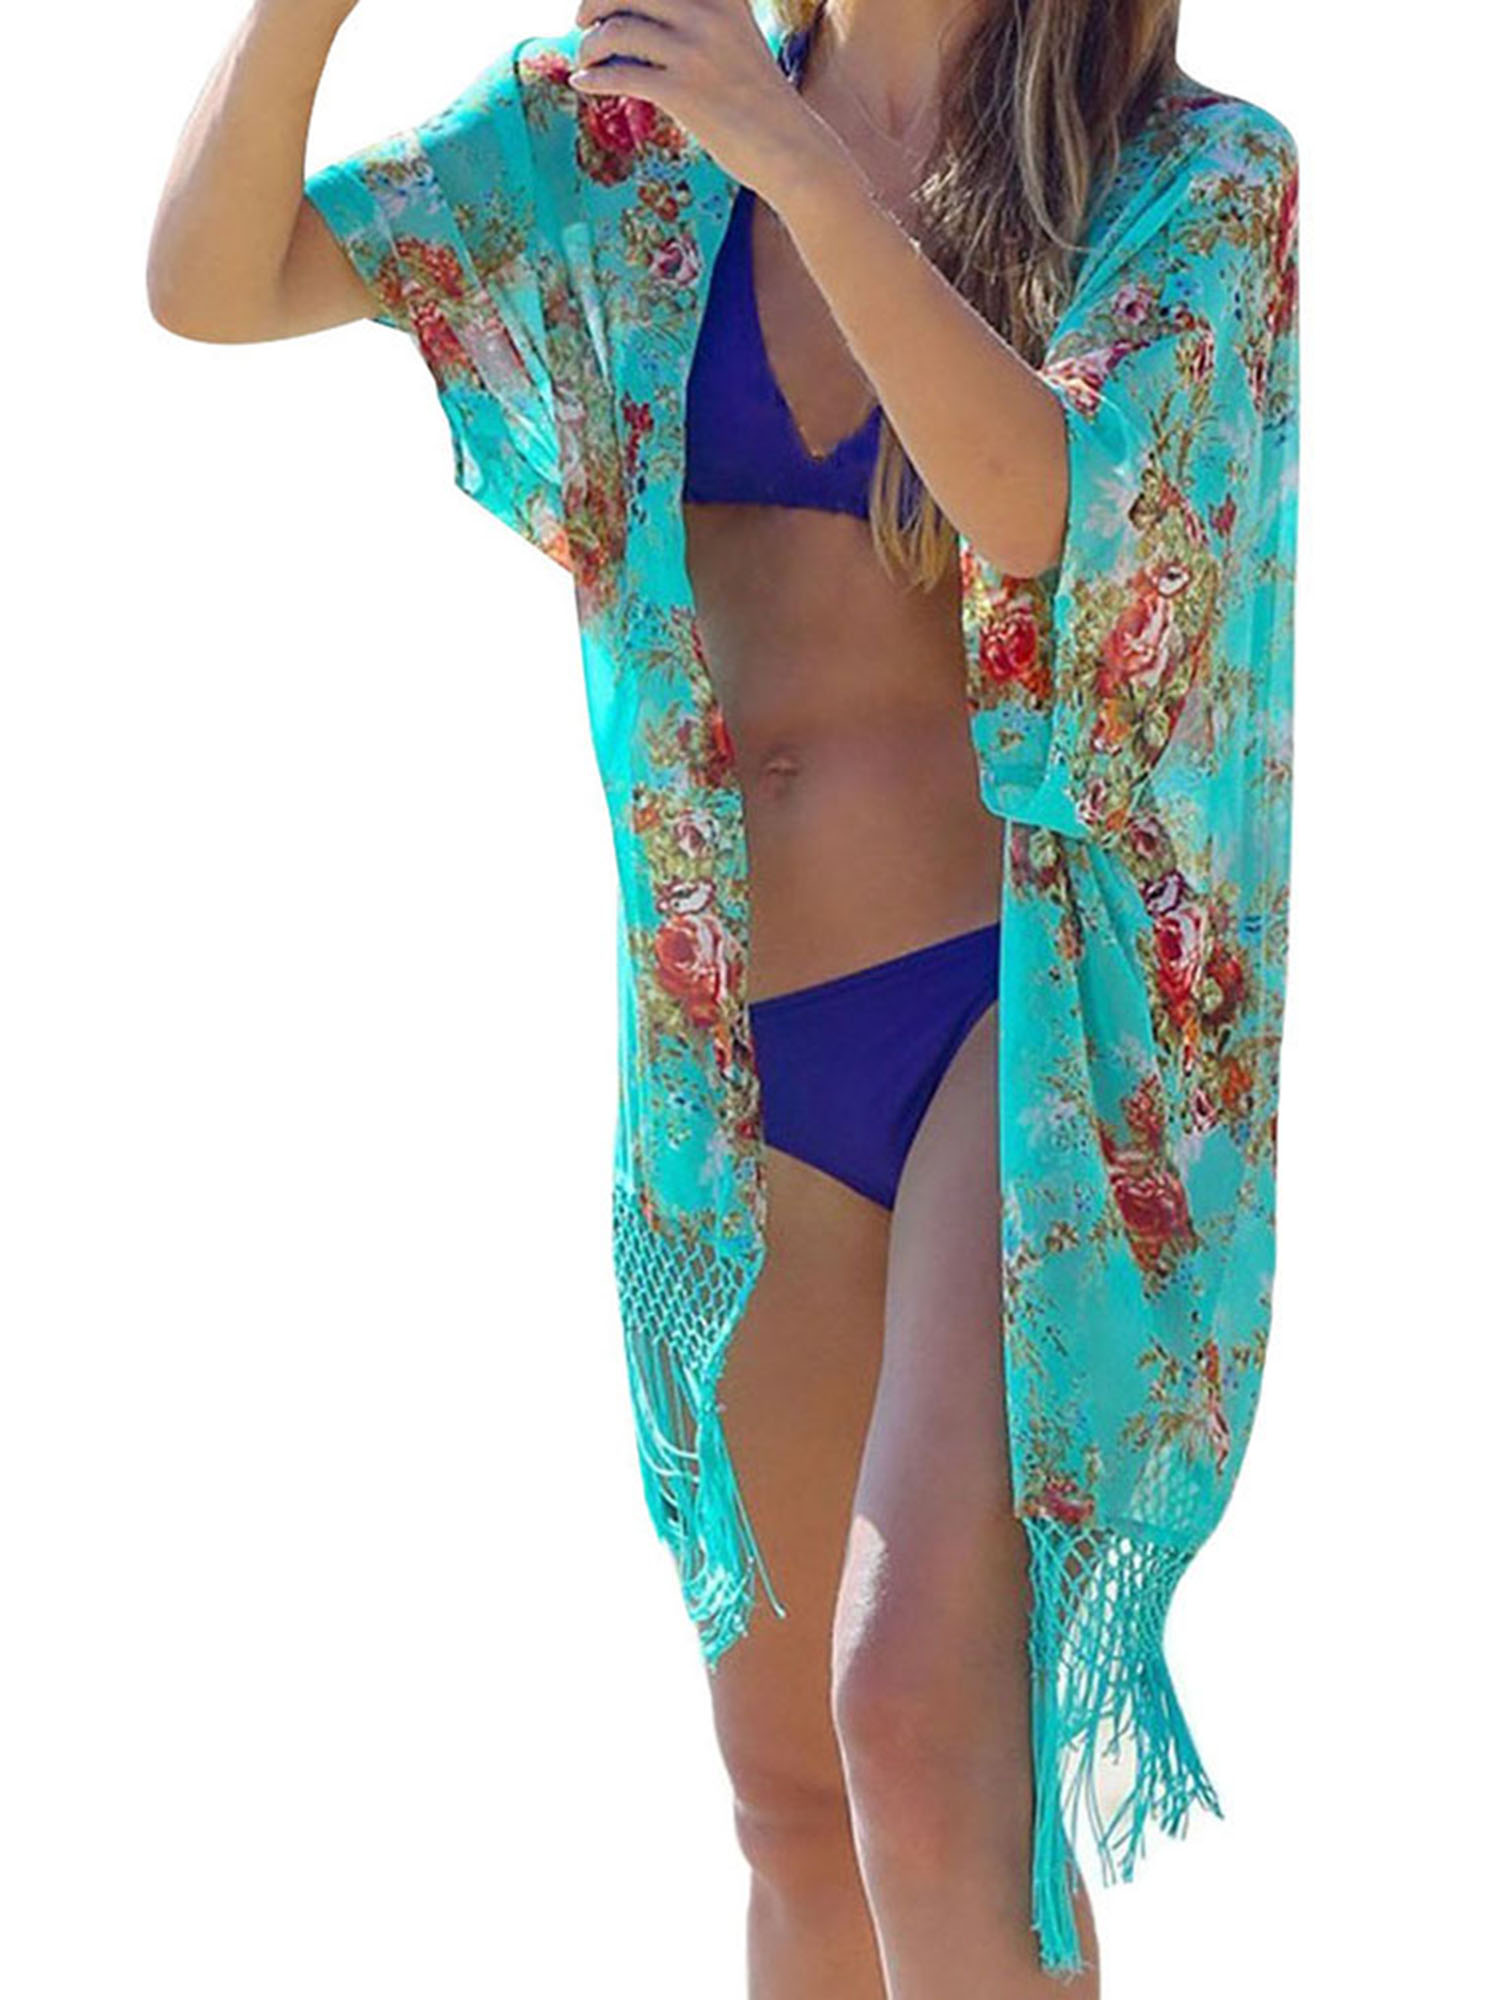 Women's Tassel Bikini Covers Floral Printed Bathing Suit Kimono Cover-ups